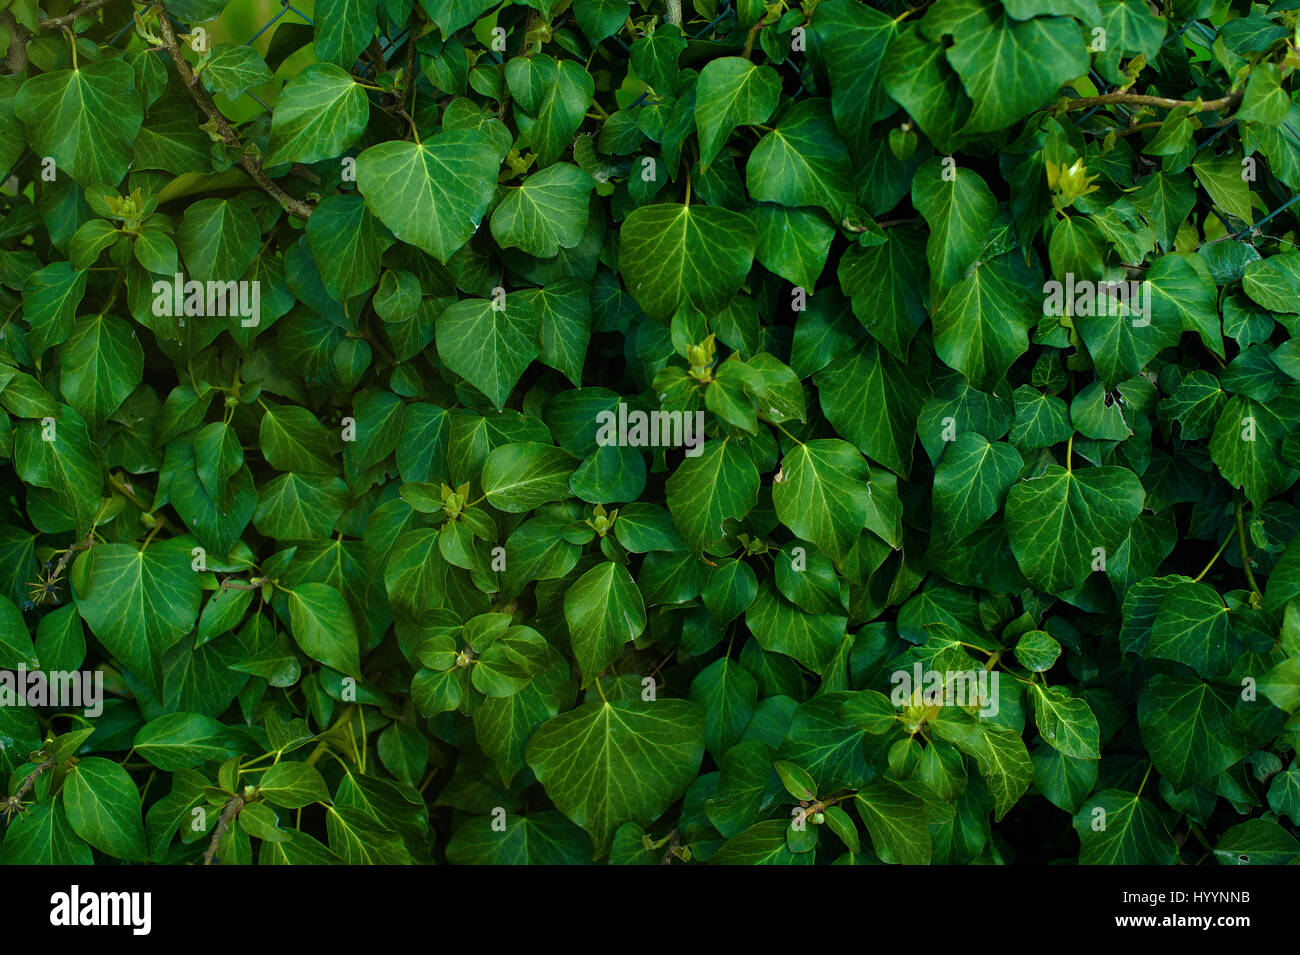 Dark green foliage of a healthy plant with serrated leaves glistening. Low key, horizontal background or banner. - Stock Image